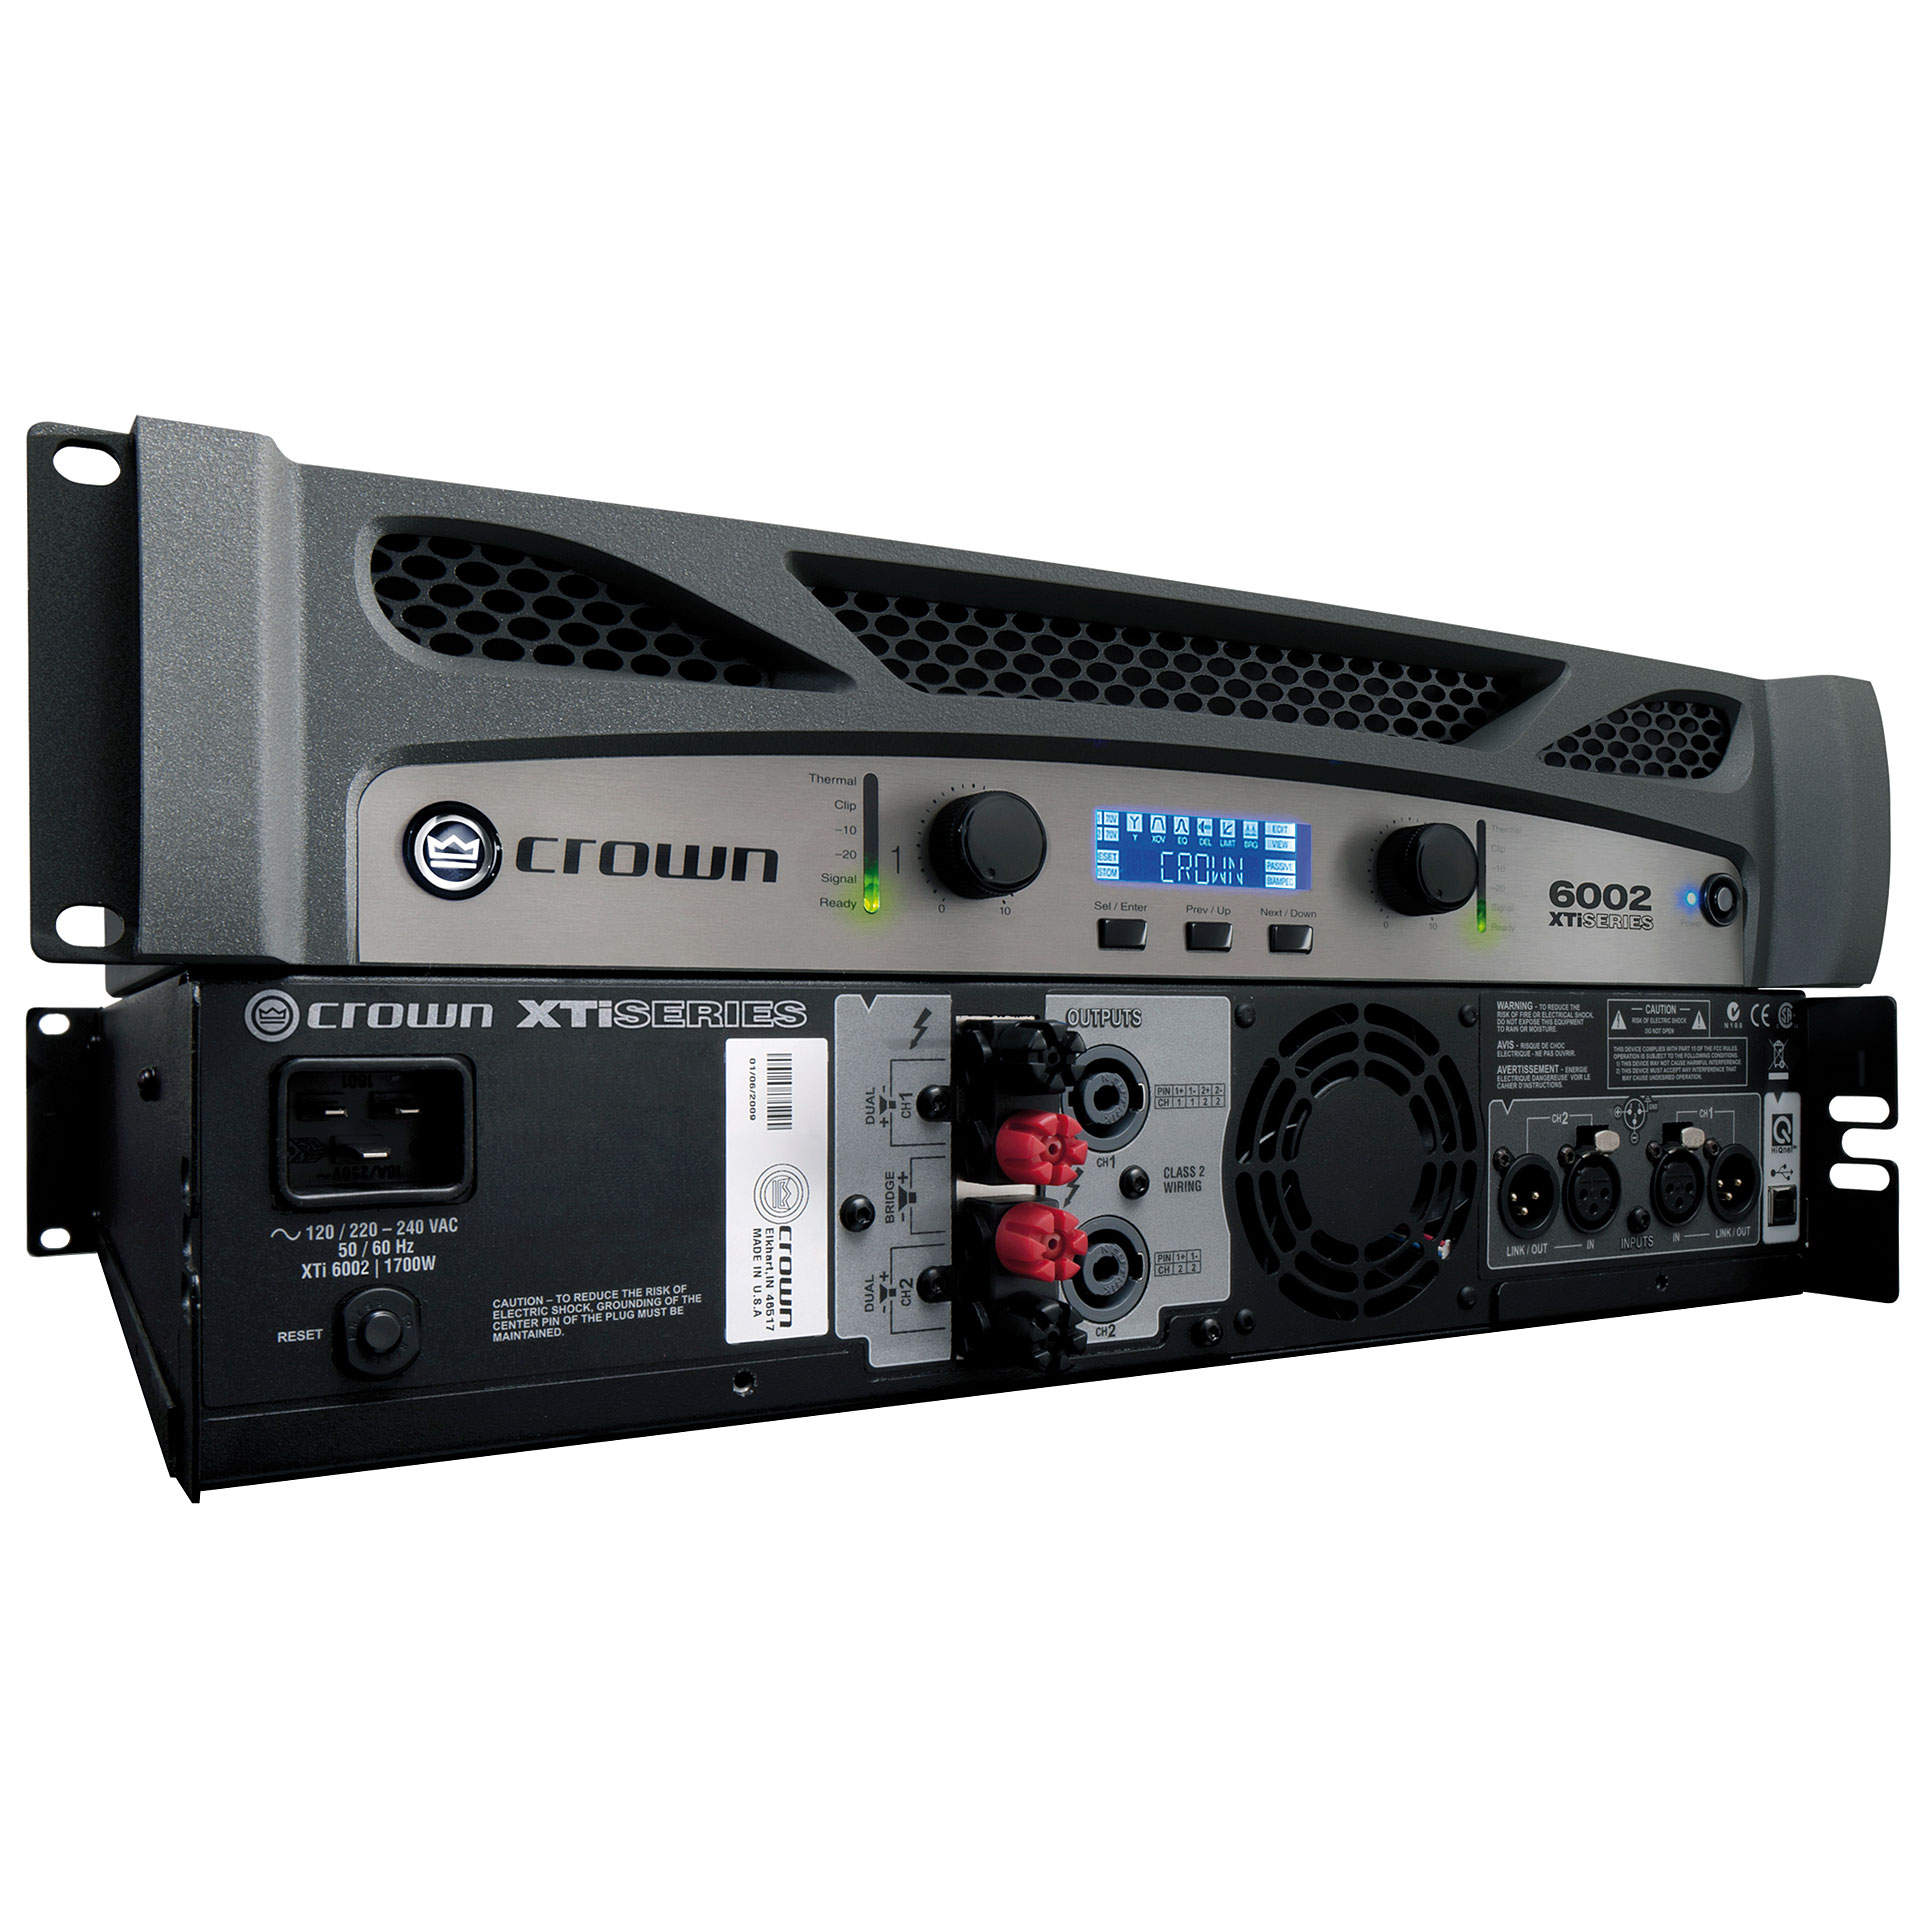 Home > PA Equipment > Power Amplifiers > Crown > XTi 6002